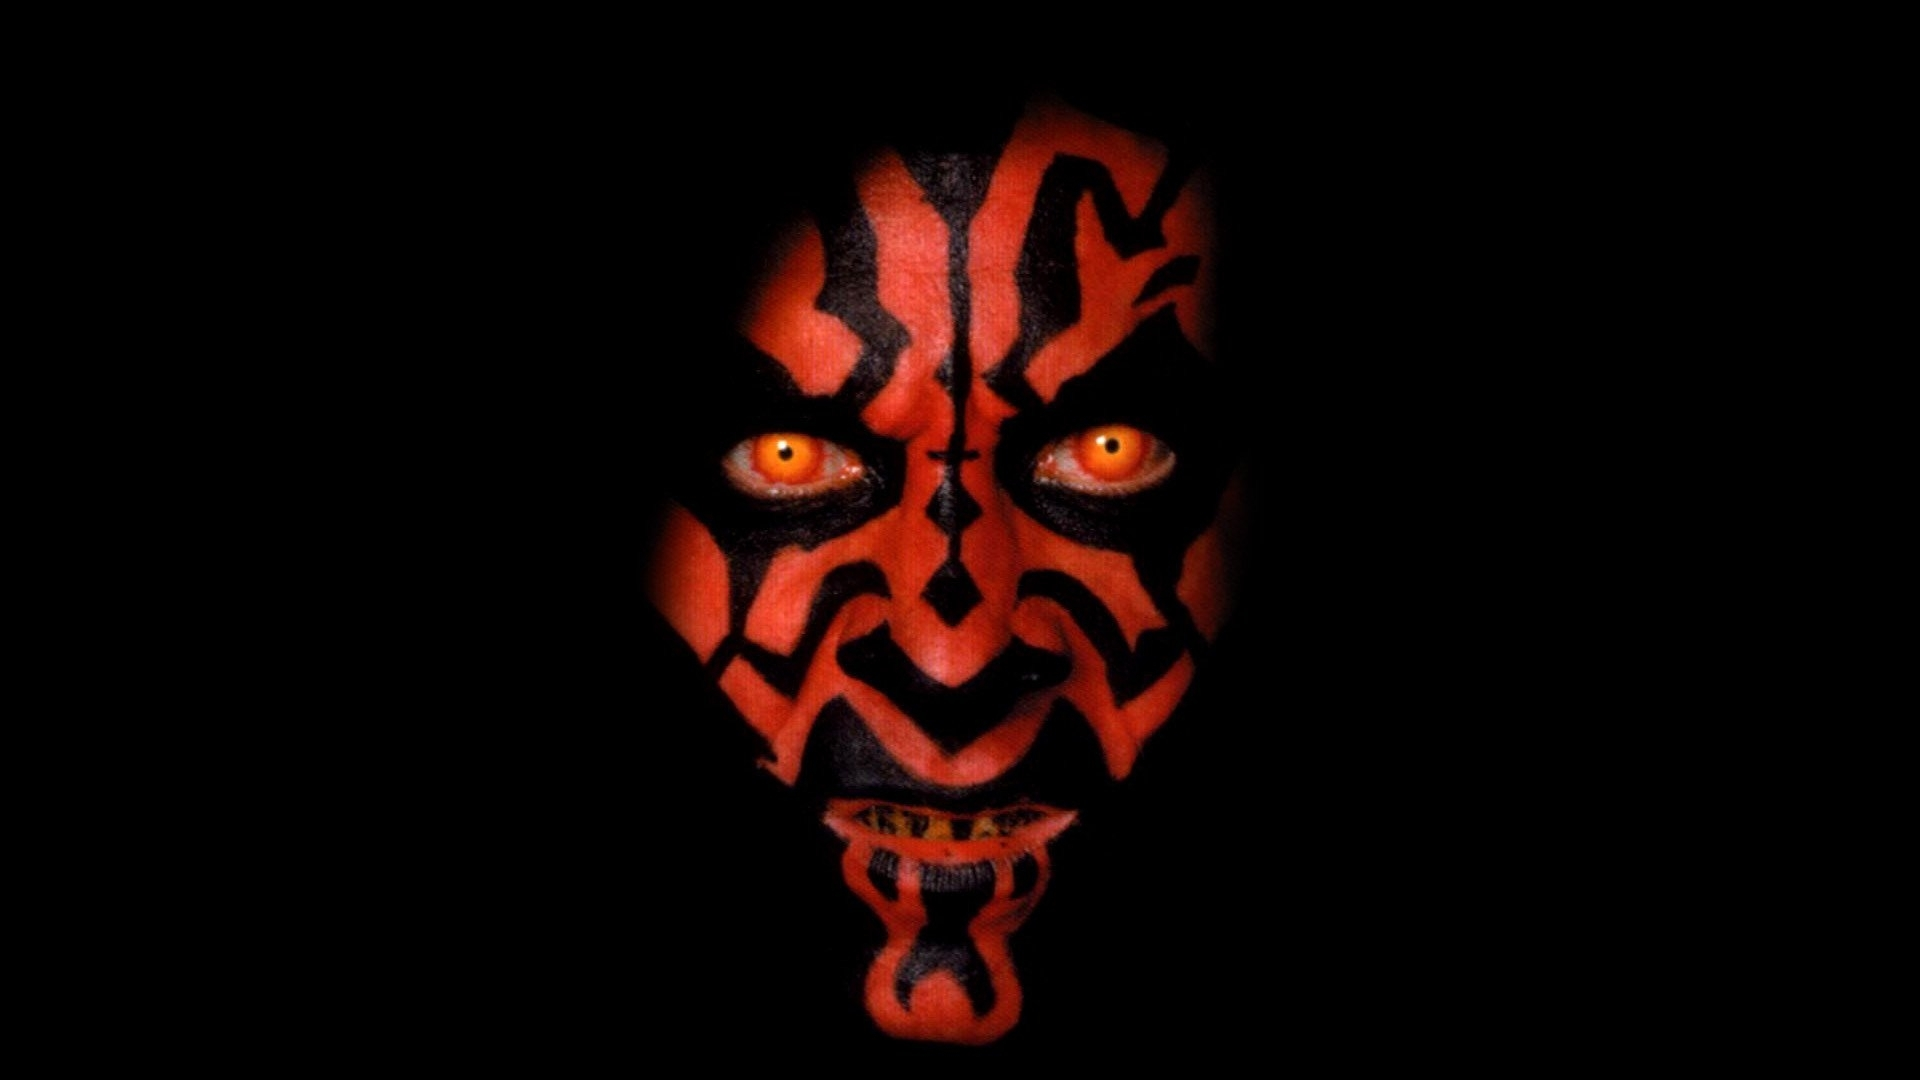 10 Top Darth Maul Hd Wallpaper FULL HD 1080p For PC Background